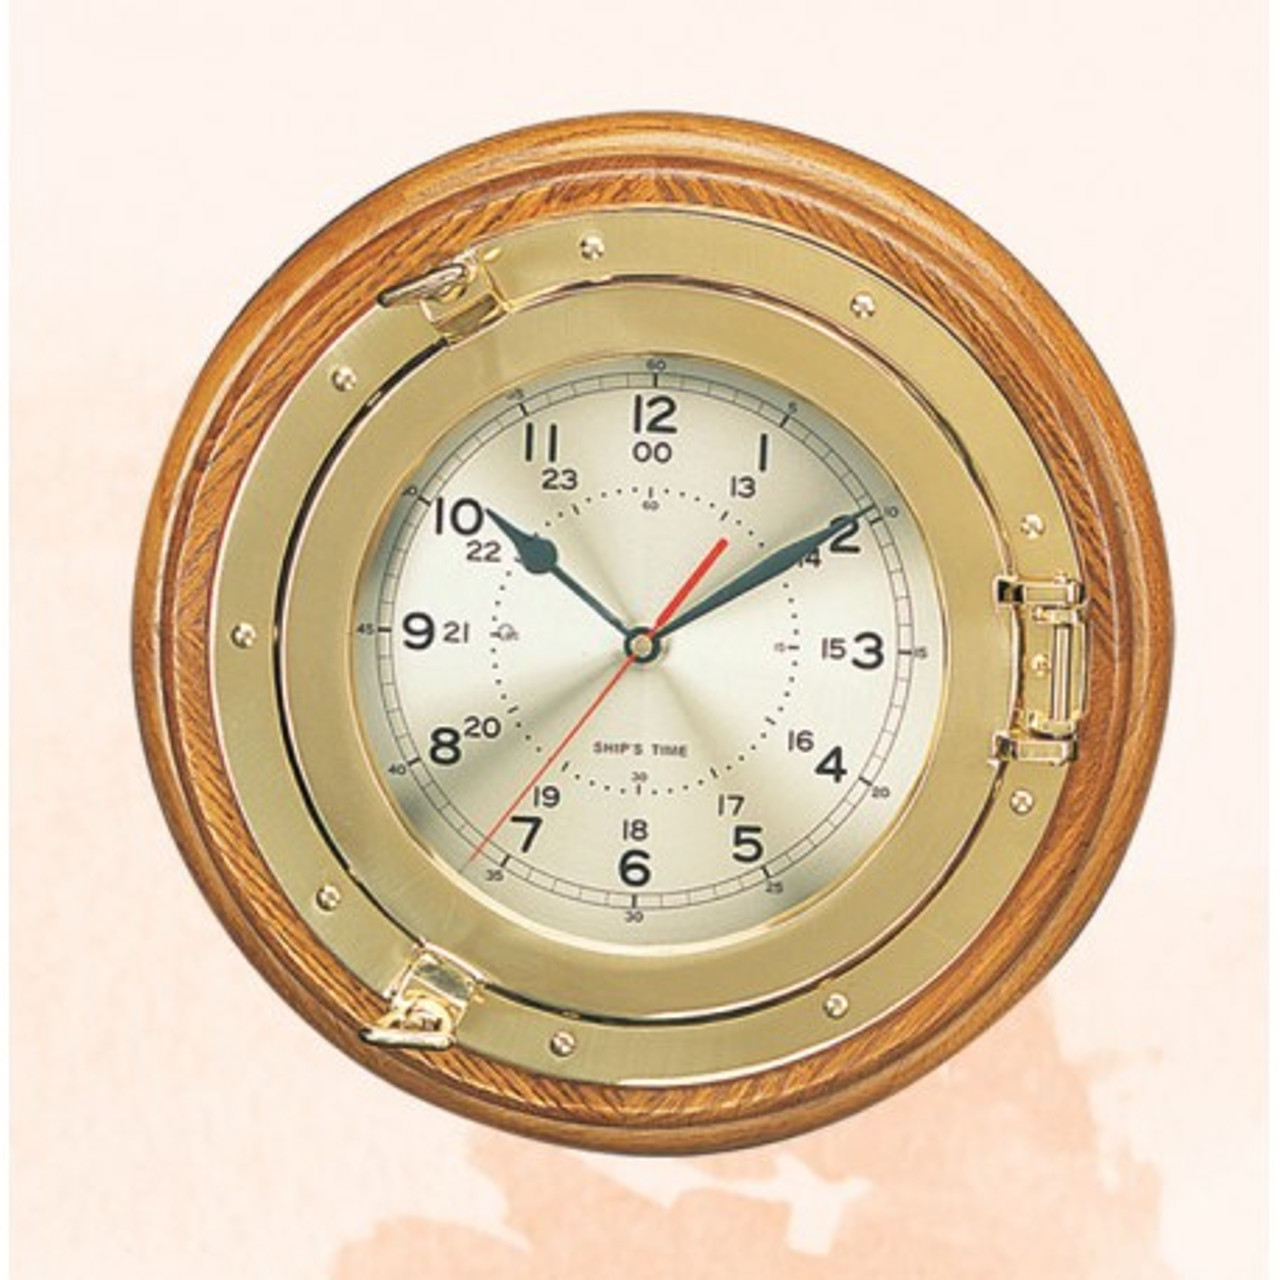 "(108 (L))  13.25"" Deluxe Polished Brass Porthole Clock with Wooden Base"